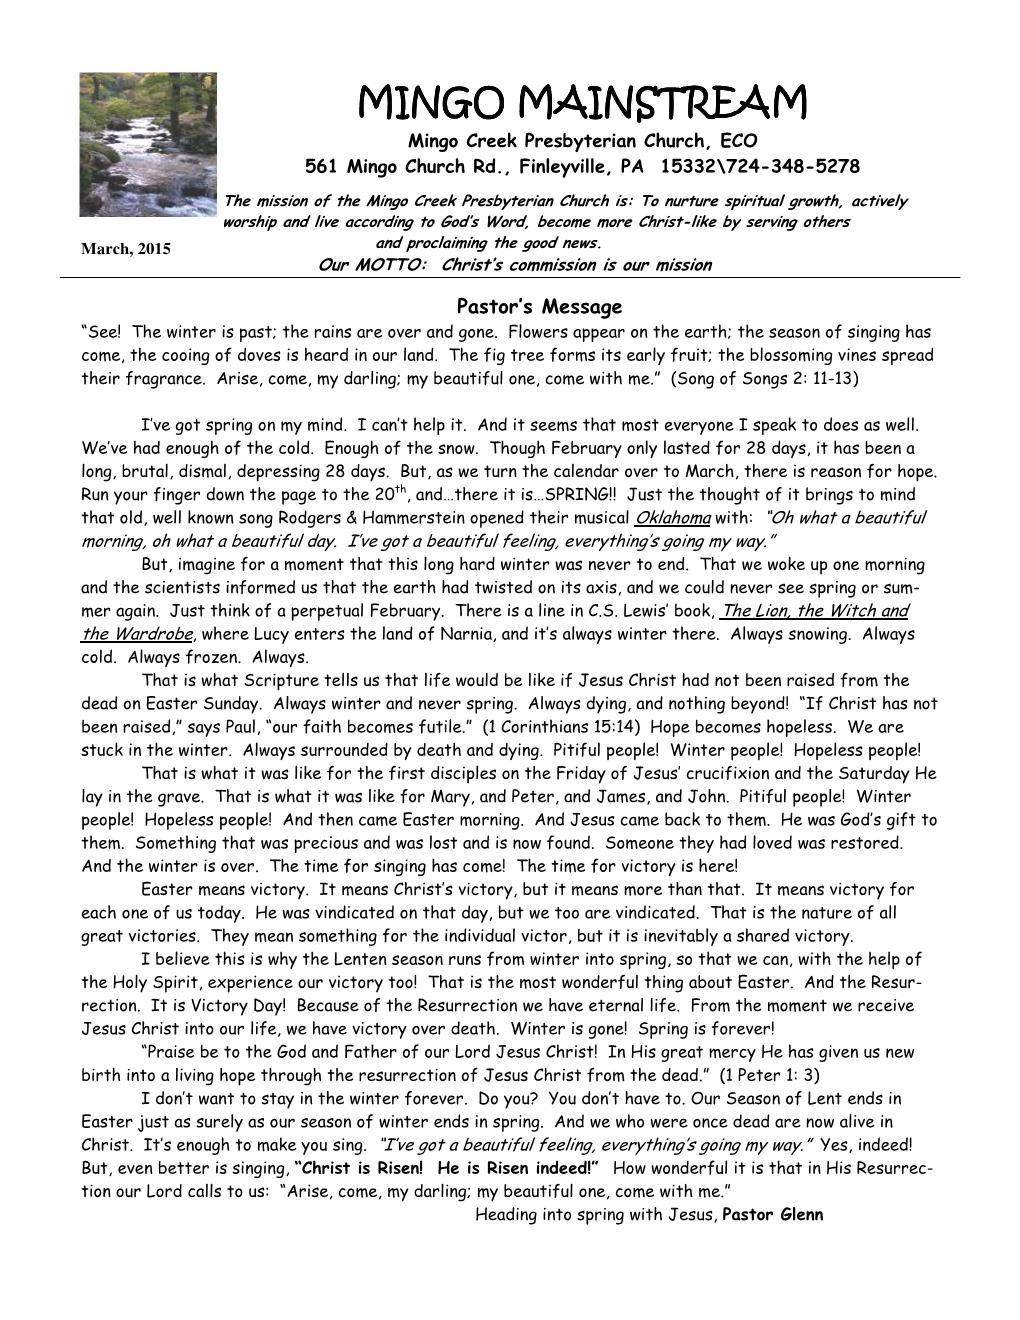 MARCH NEWSLETTER Page 001.jpg